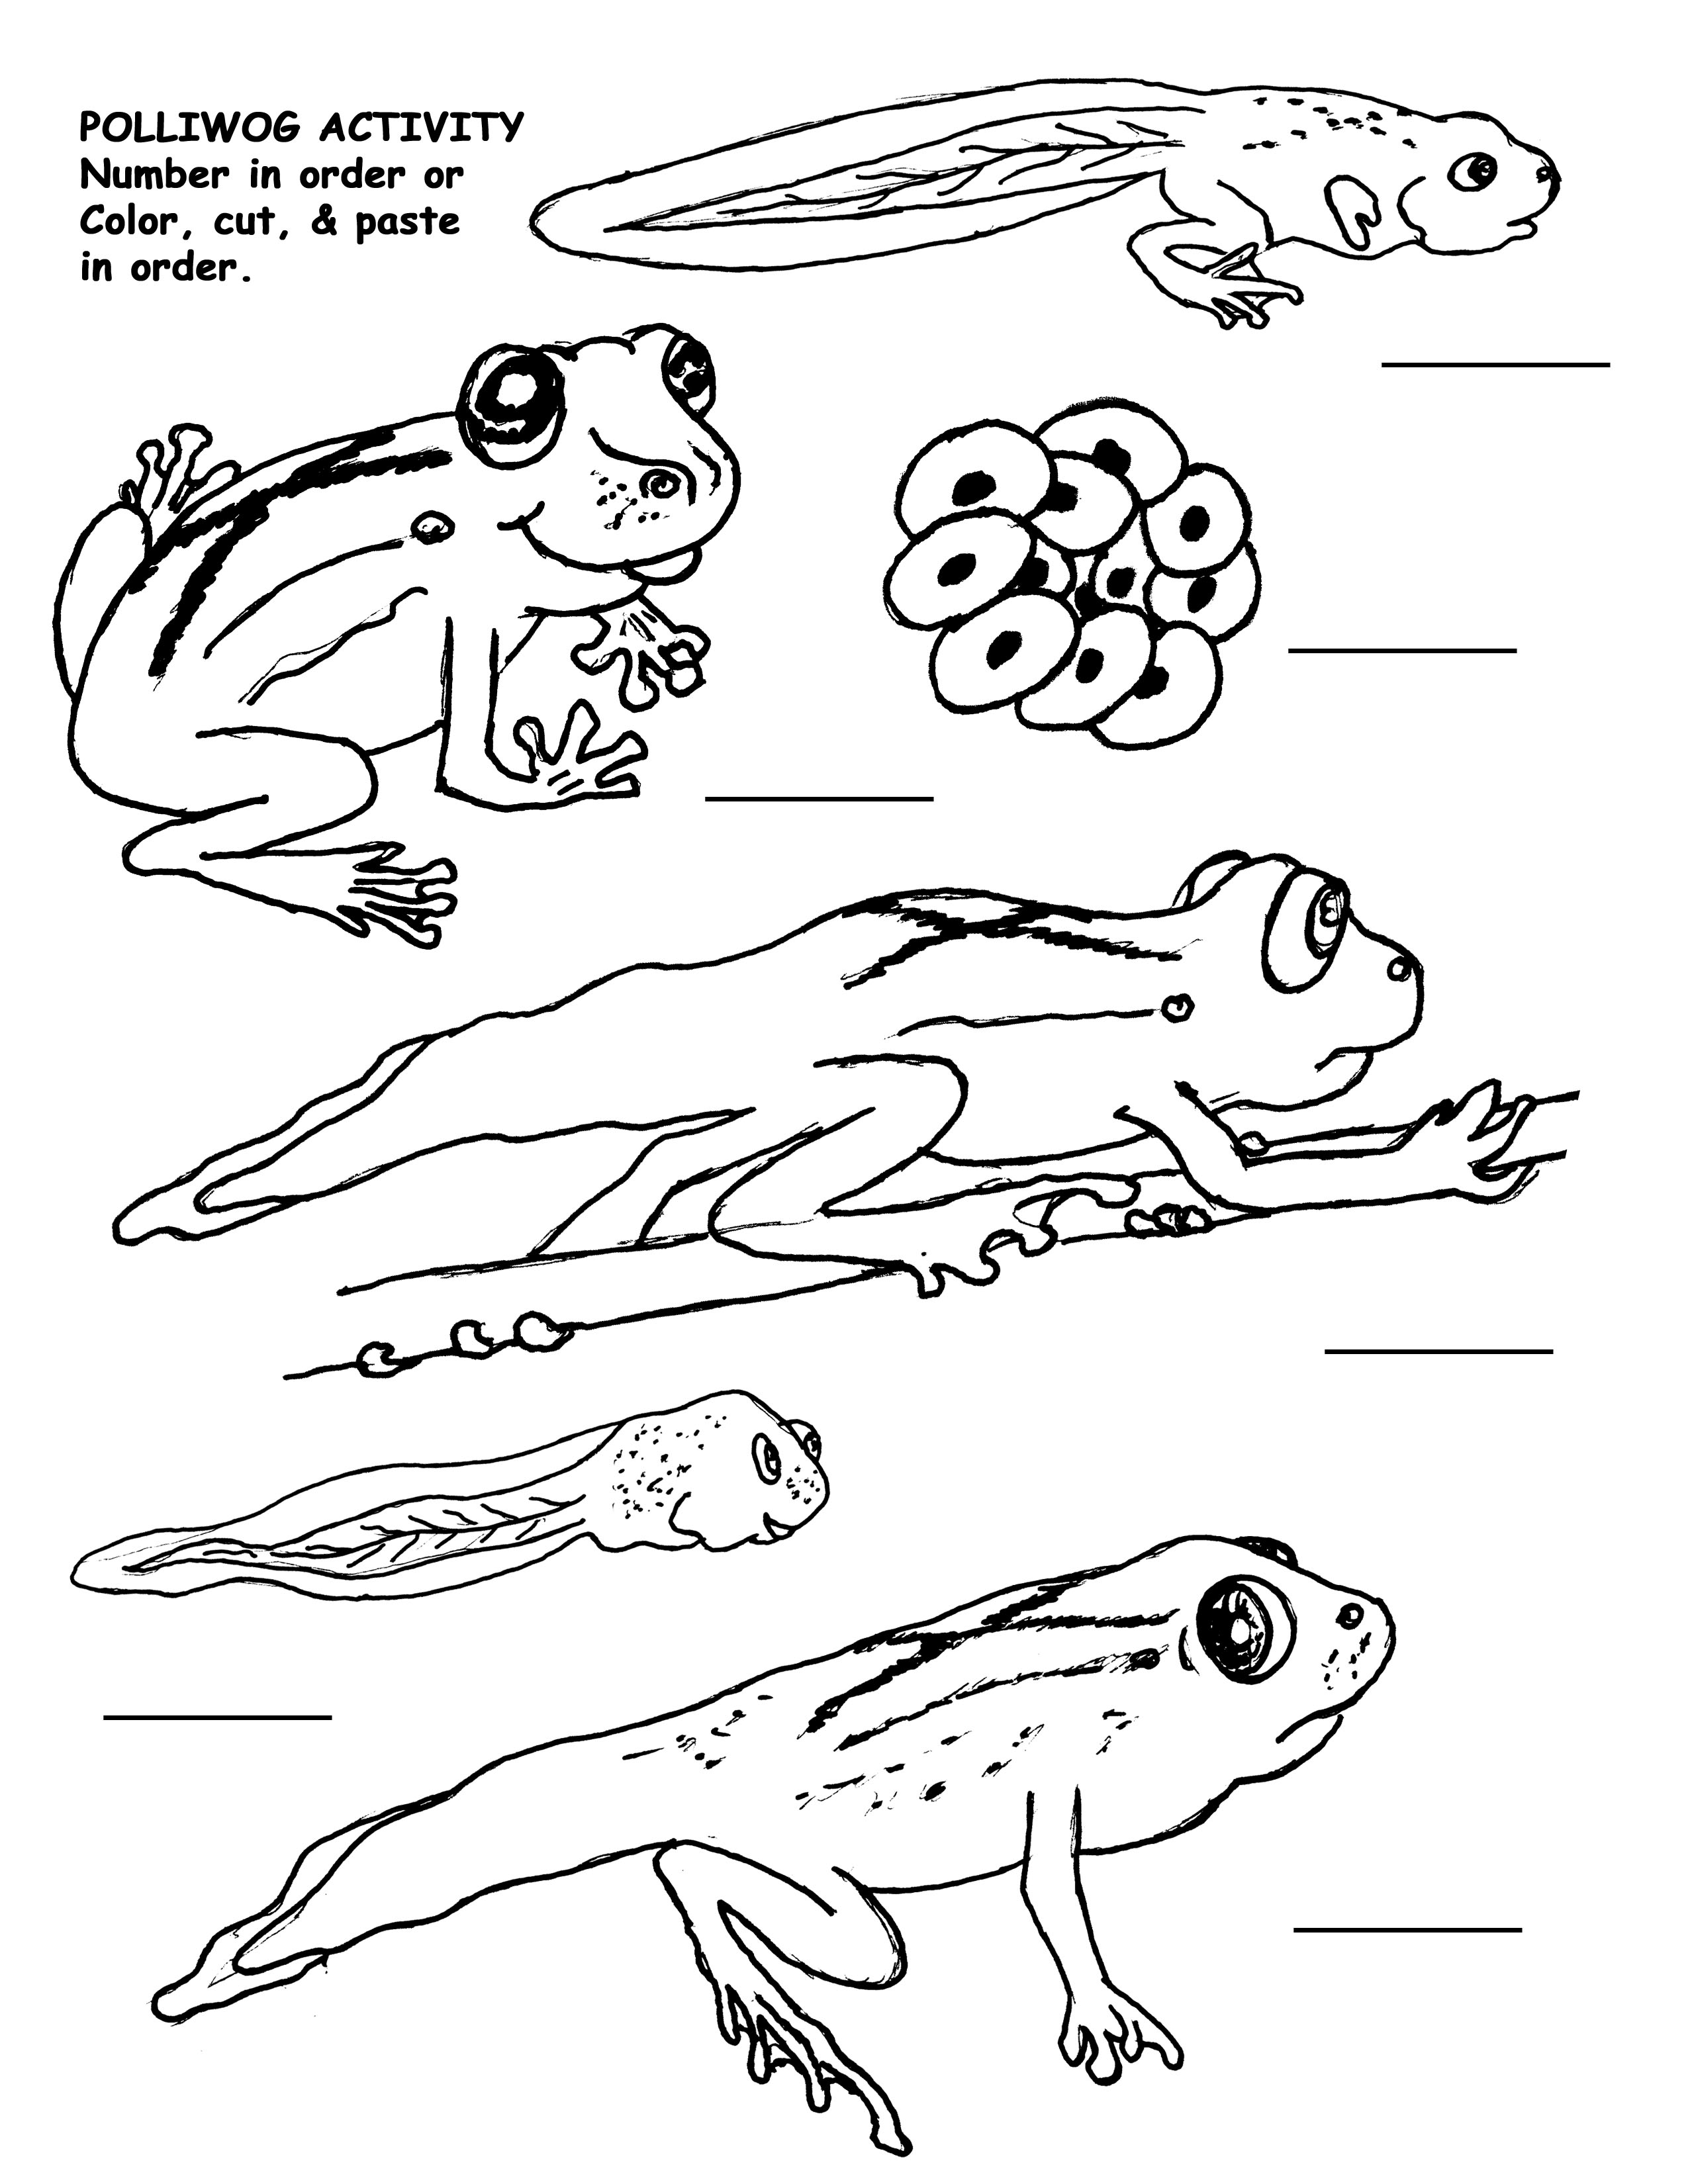 life cycle of a frog printable life cycle of a frog pictures for kids www printable frog of a life cycle